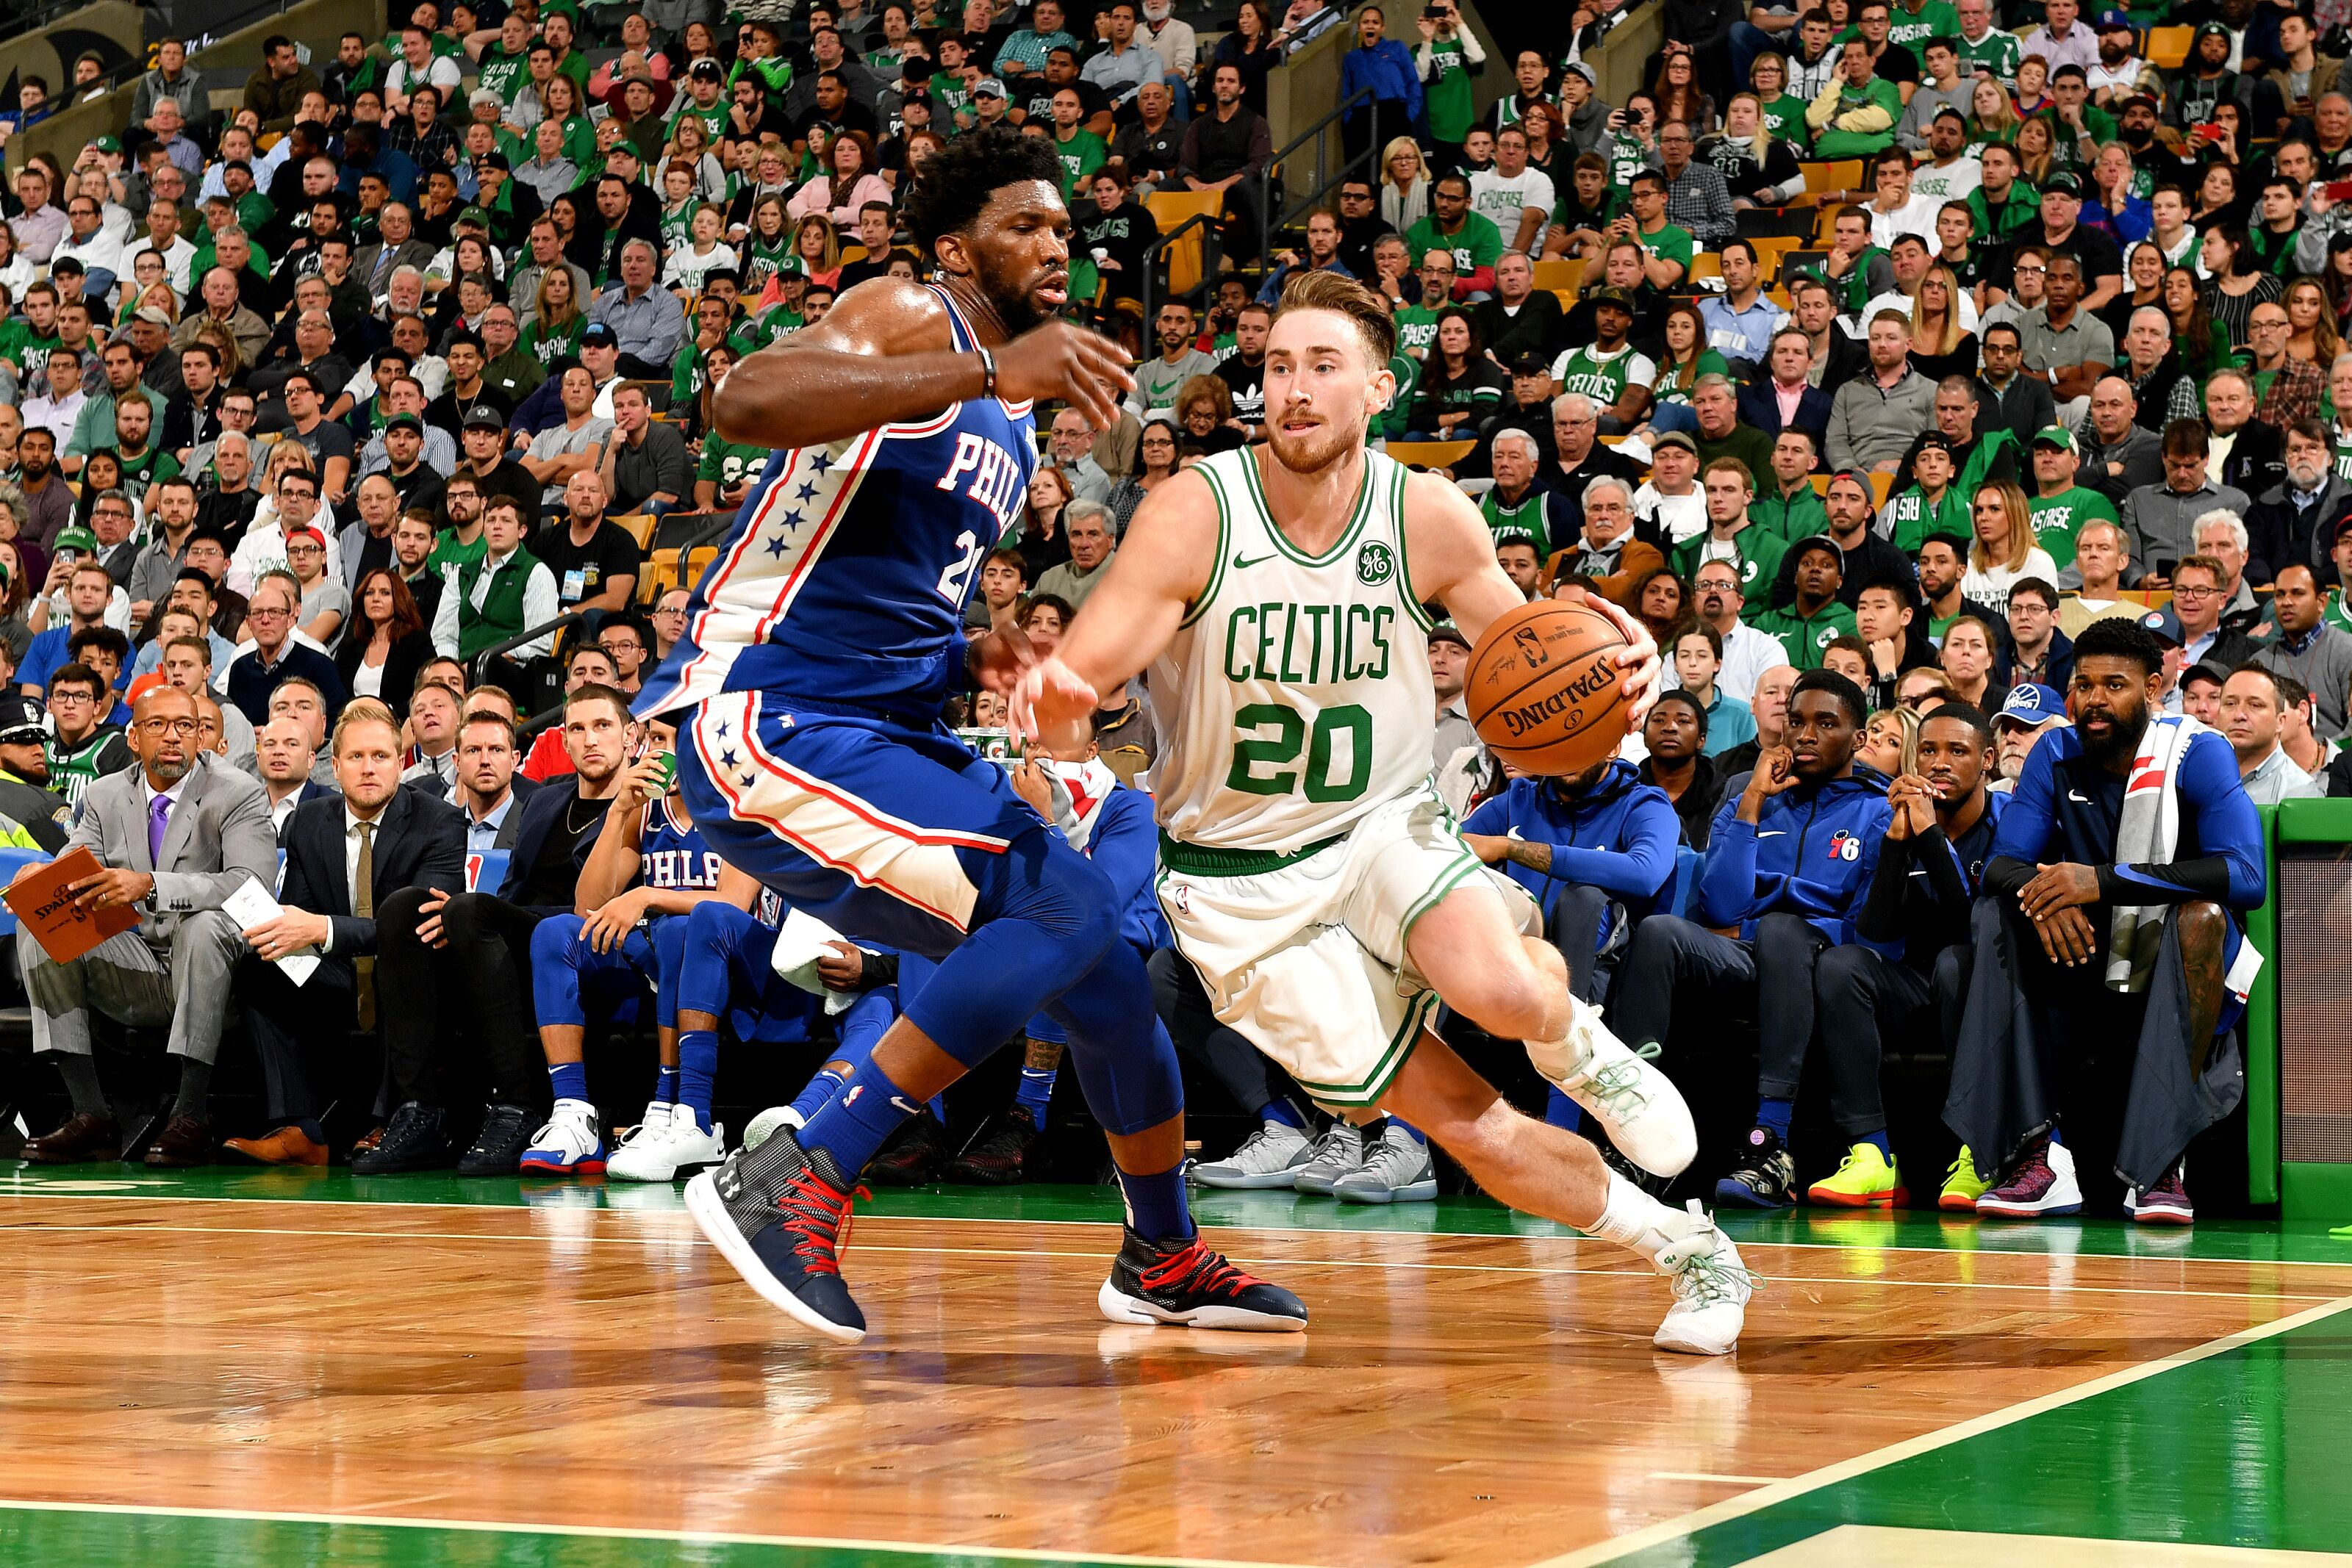 Celtics Host Sixers: Highlights, Score and recap from NBA